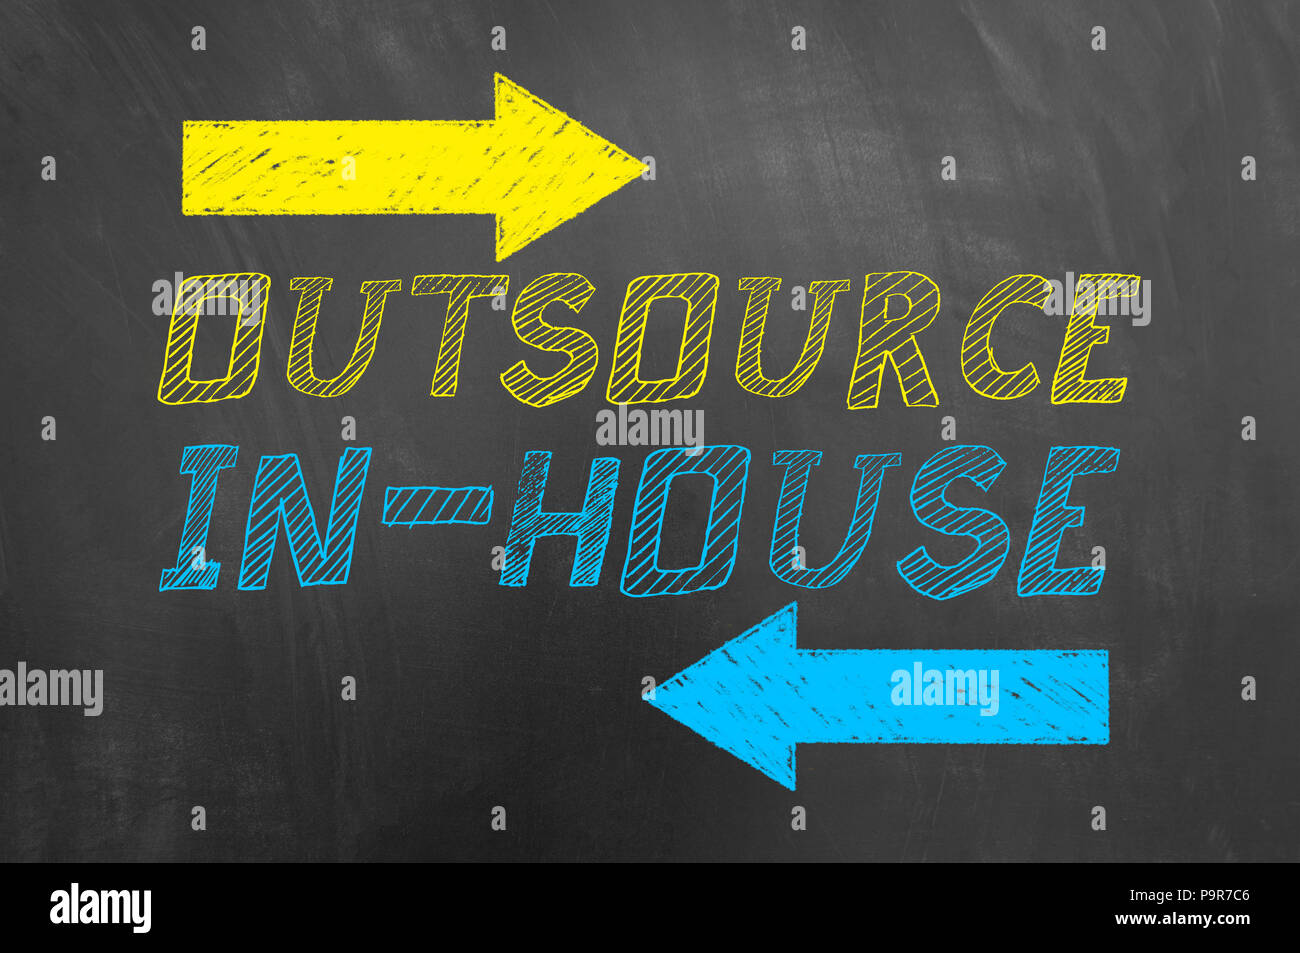 Outsource in house text and arrows drawing on blackboard or chalkboard strategic management recruitment promotion choice concept Stock Photo